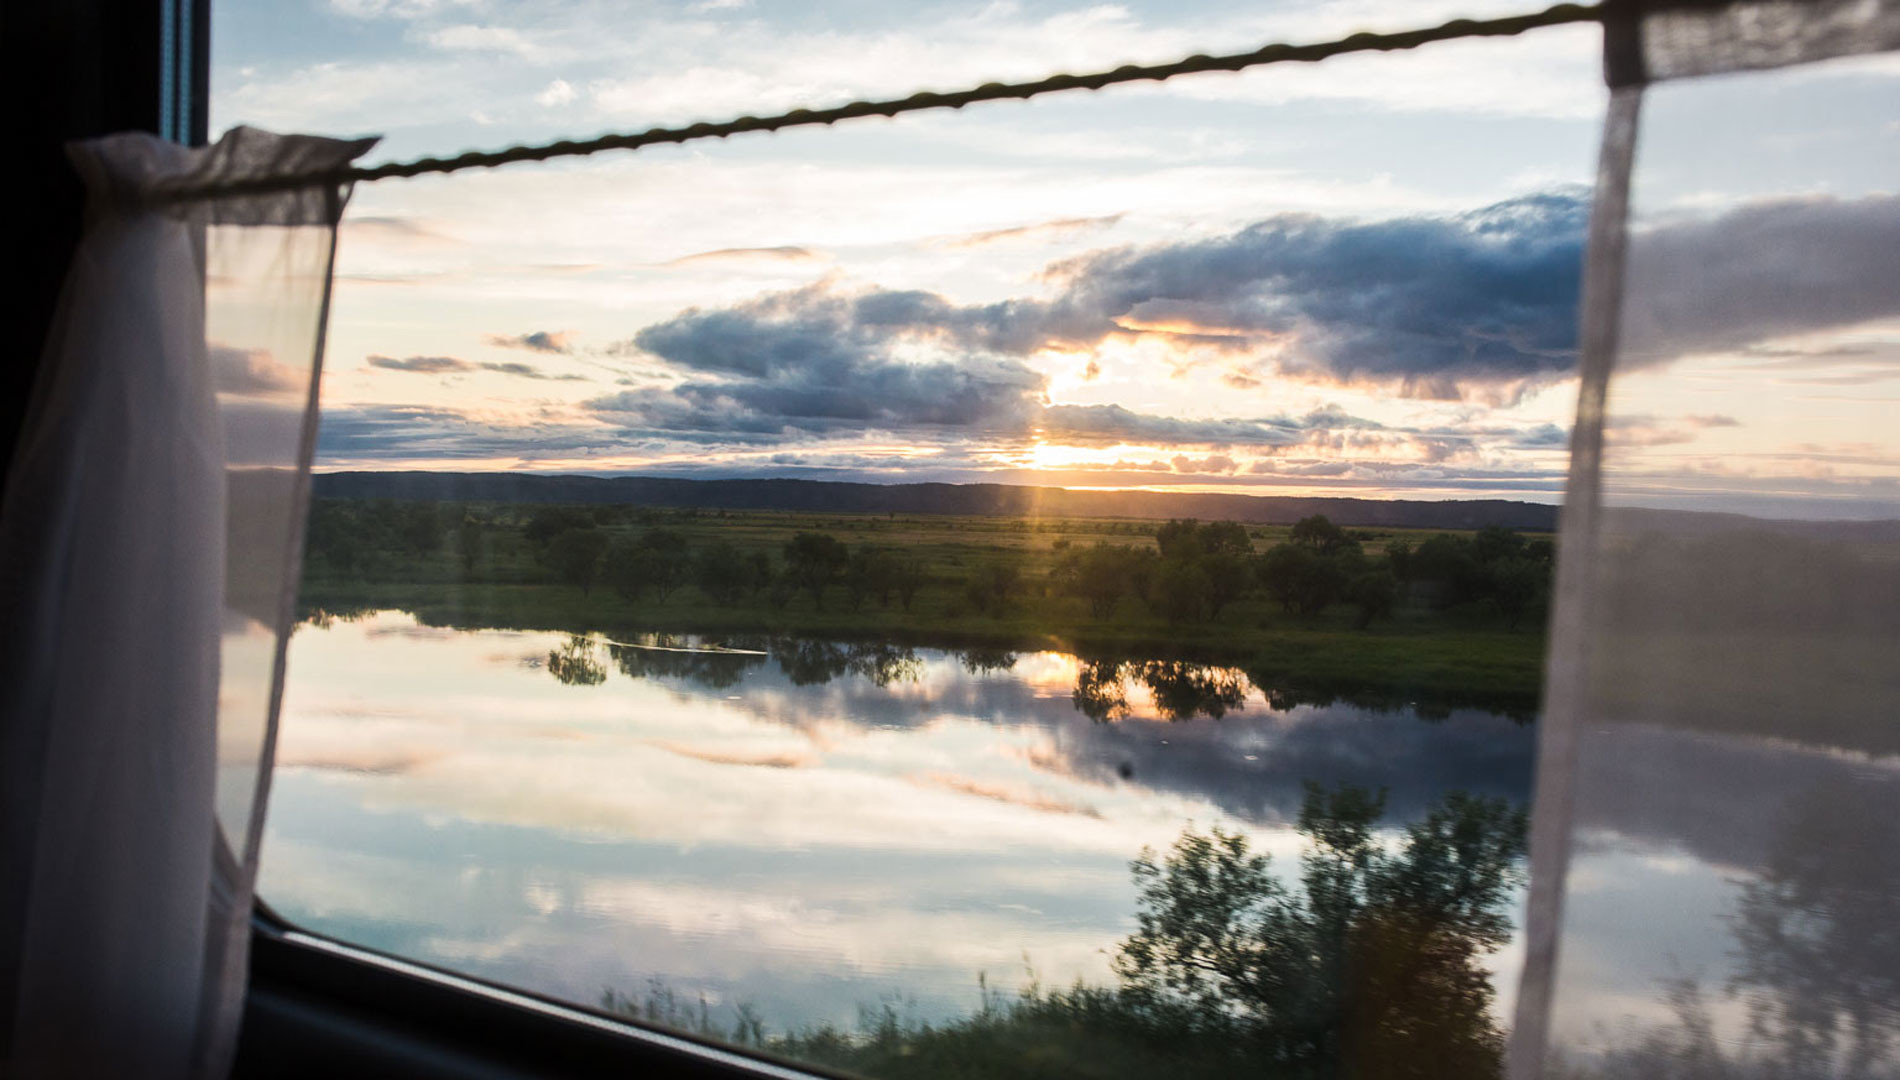 12 incredible images from a Trans-Siberian train window (PHOTOS) - Russia  Beyond